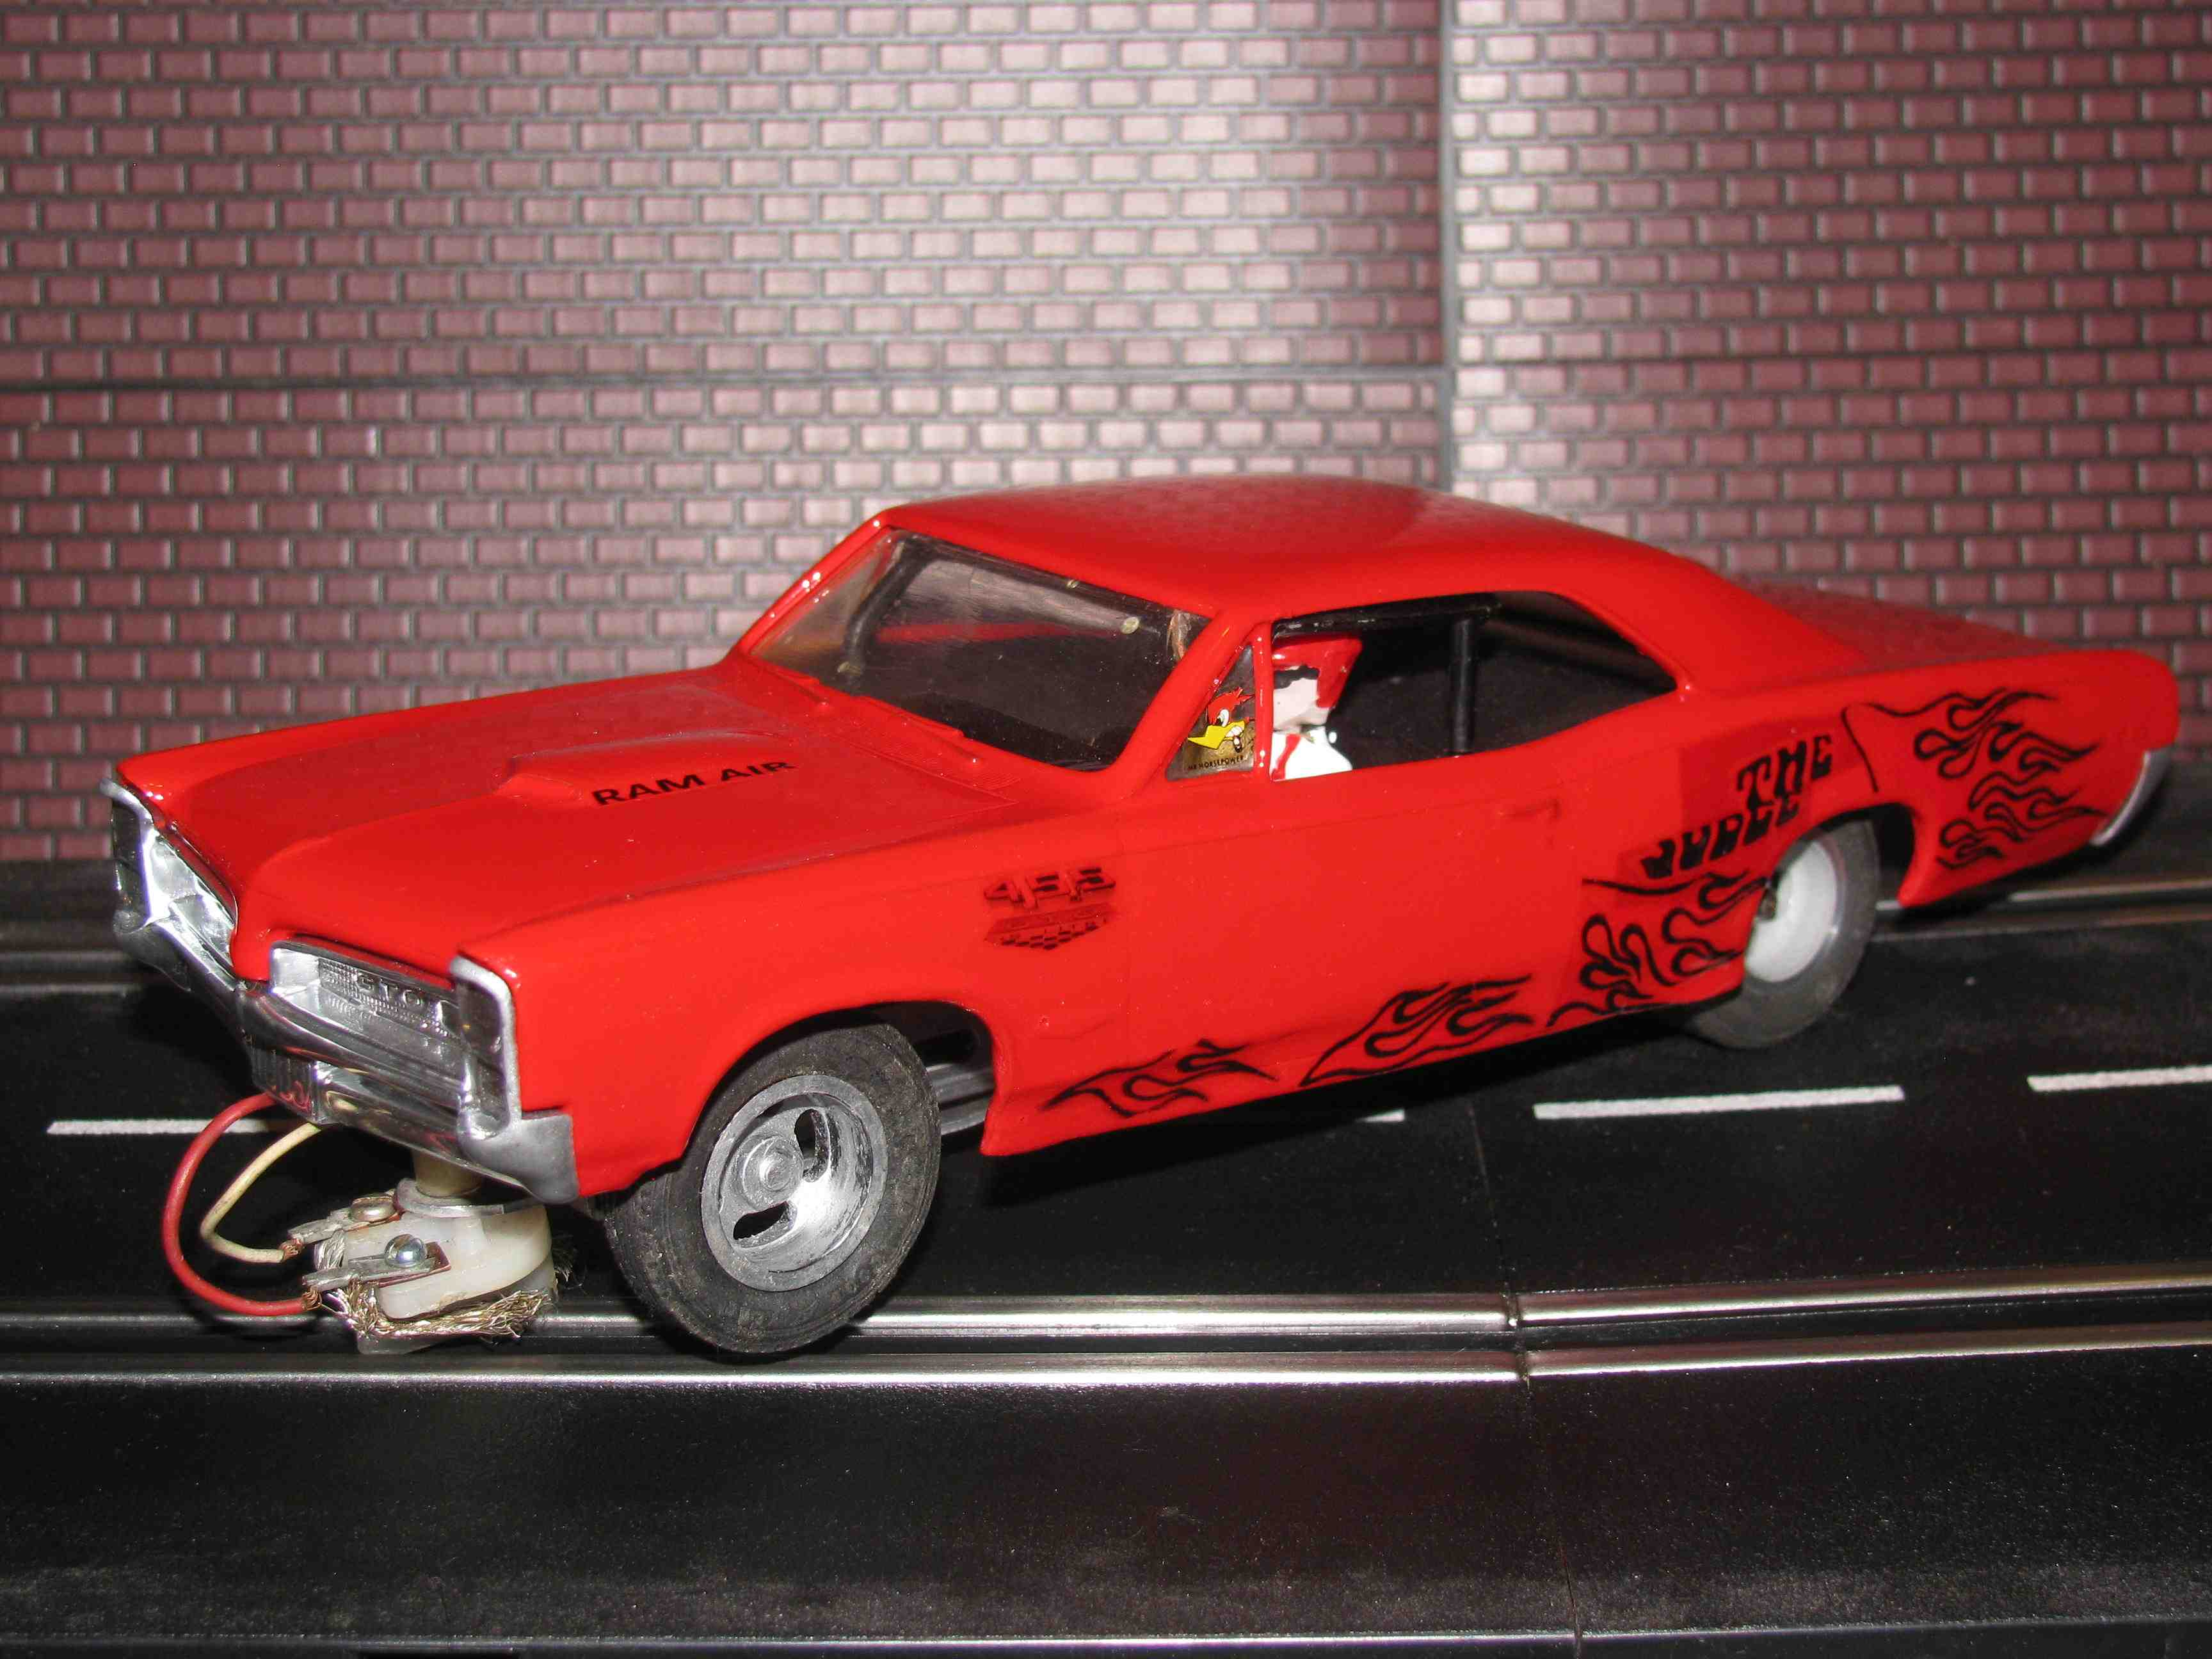 """* SORRY YOU MISSED OUT ON THIS ONE - SOLD * 1966 Pontiac GTO """"The Judge"""" Slot Car in 1/24 Scale"""